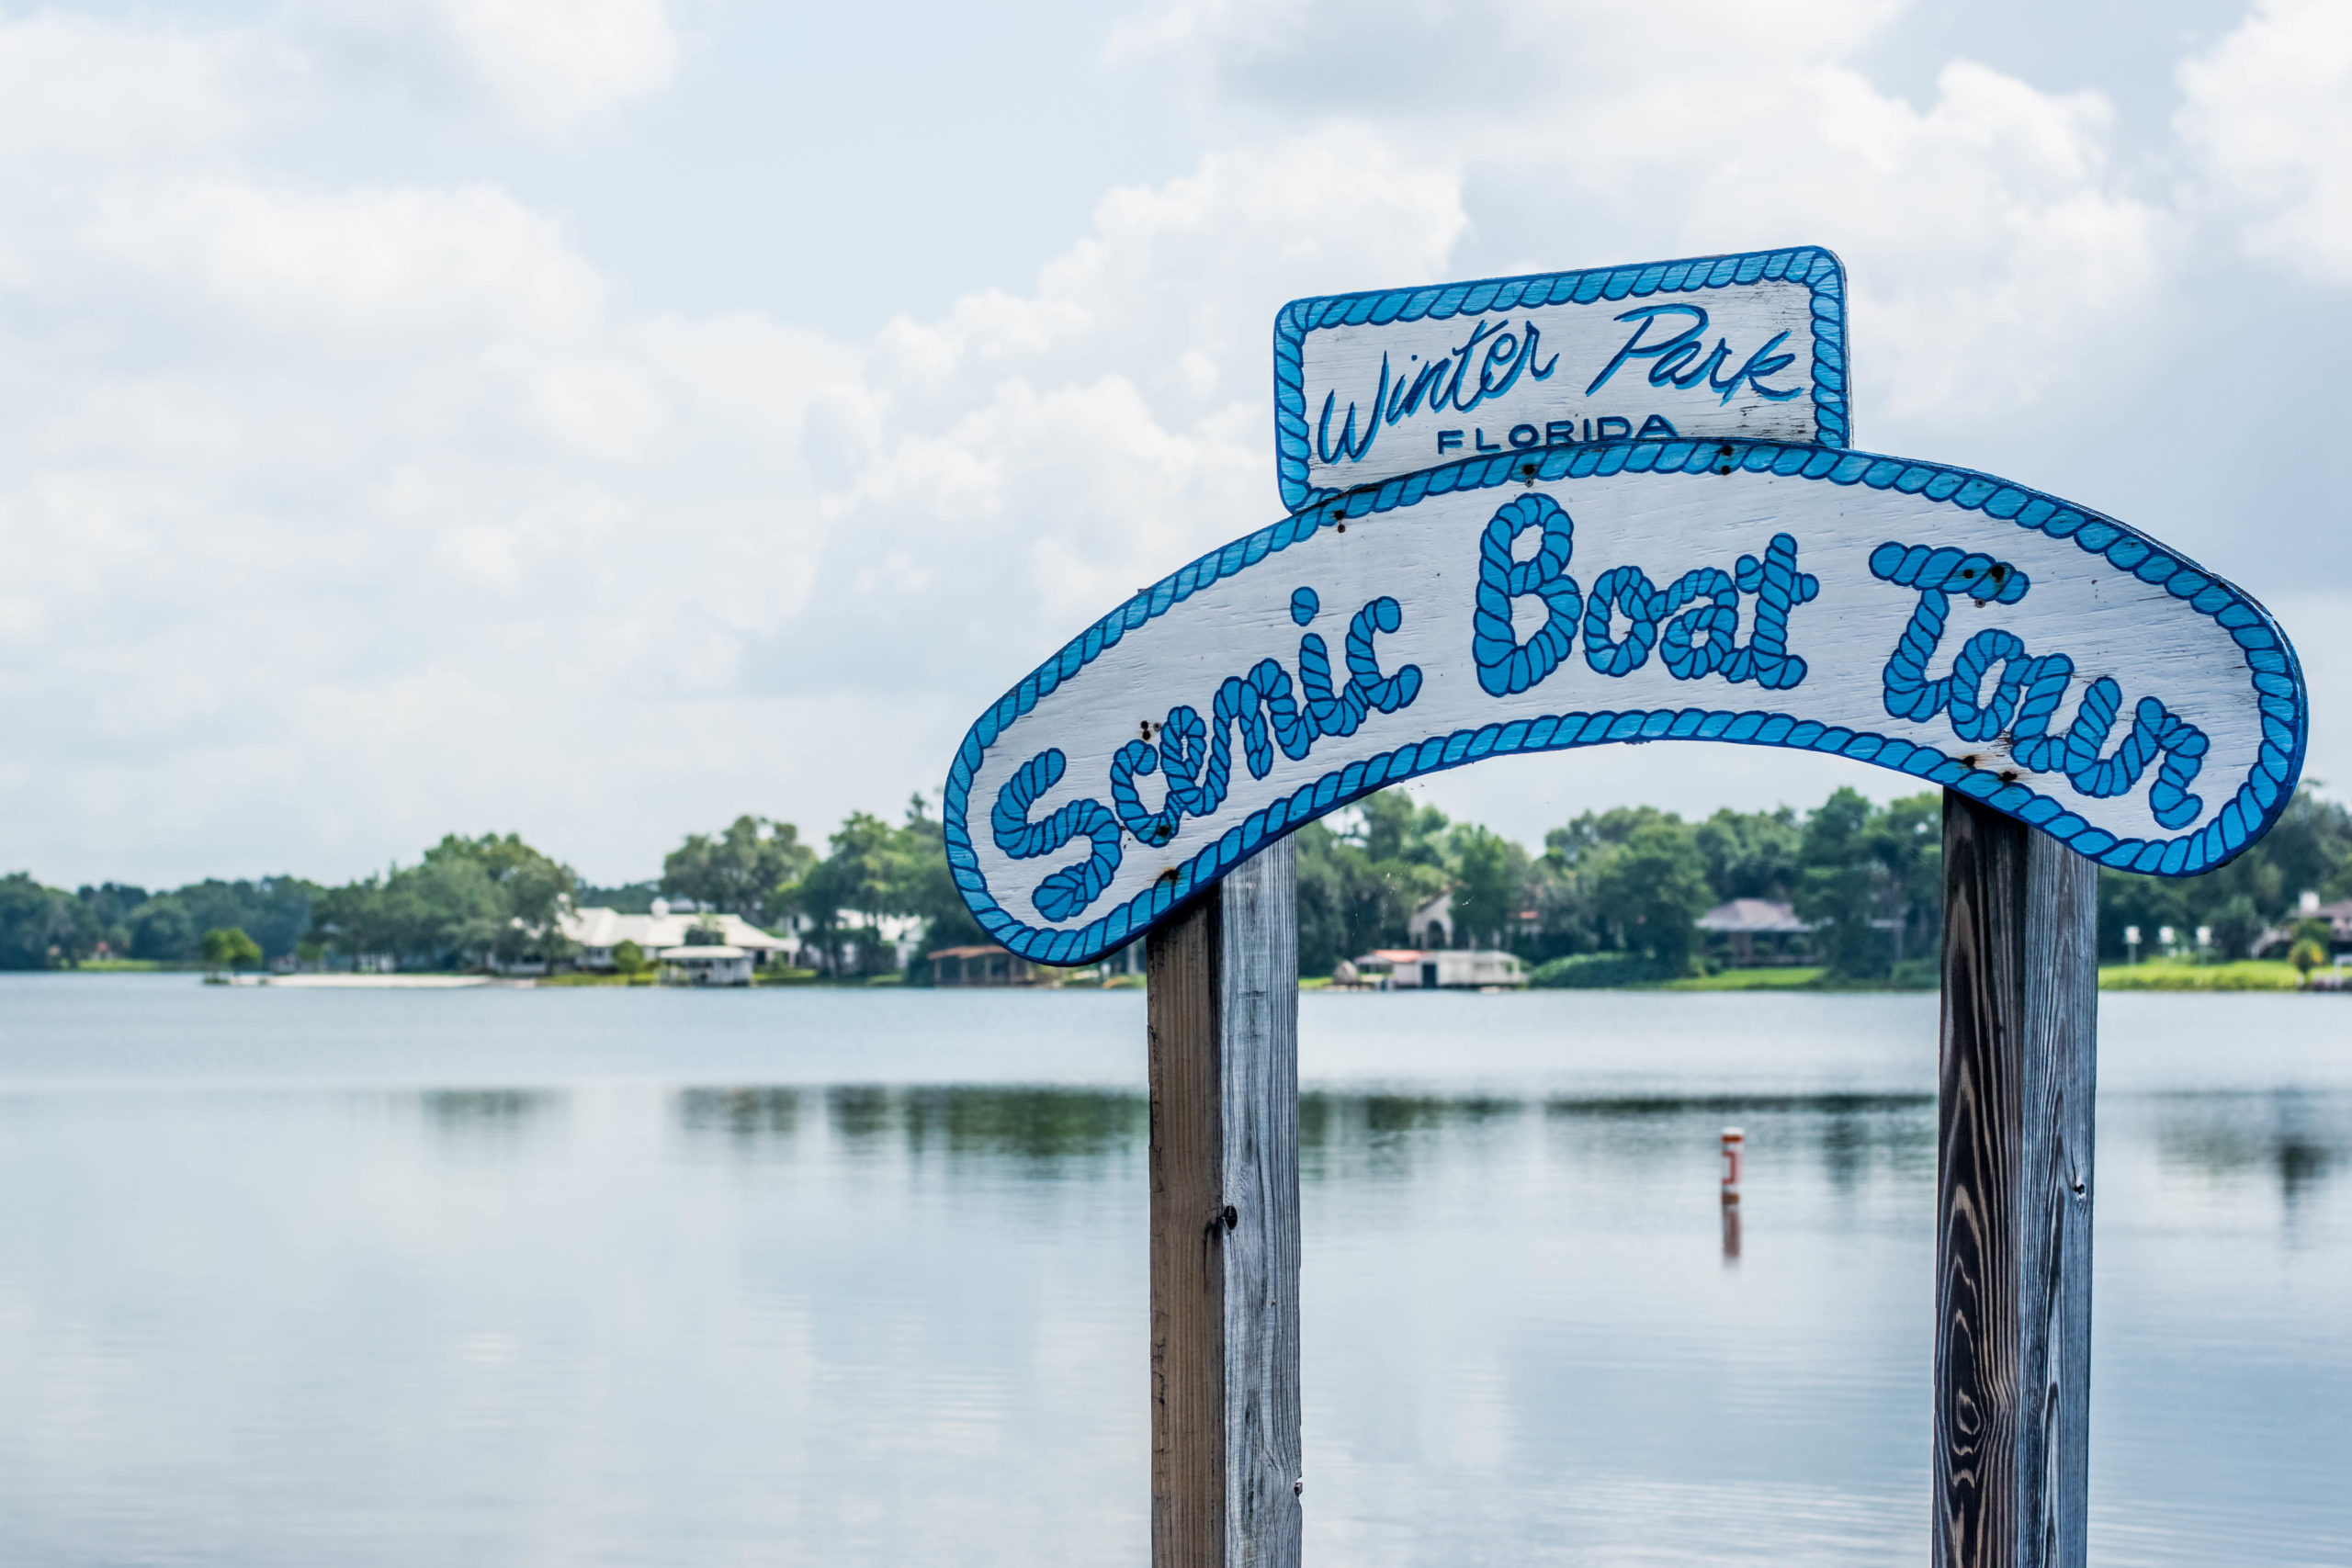 Winter Park Scenic Boat Tour sign.